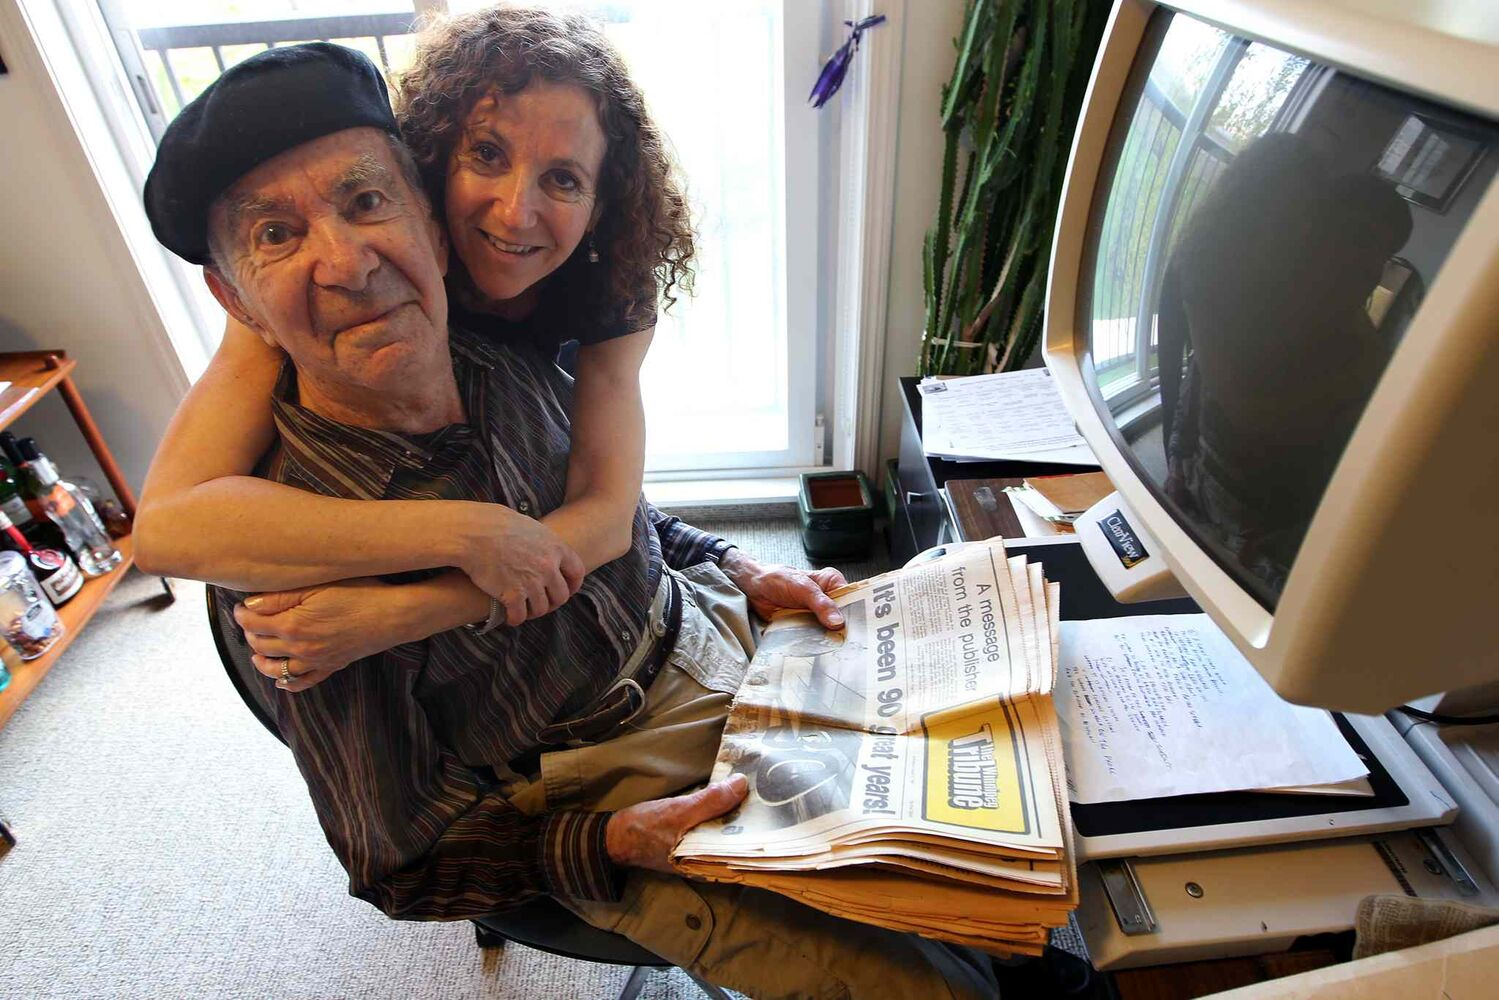 Val Werier receives a hug from his daughter, Judy, while seated at a computer and holding a copy of the Winnipeg Tribune on May 11, 2012. (JOE BRYKSA / WINNIPEG FREE PRESS FILES)